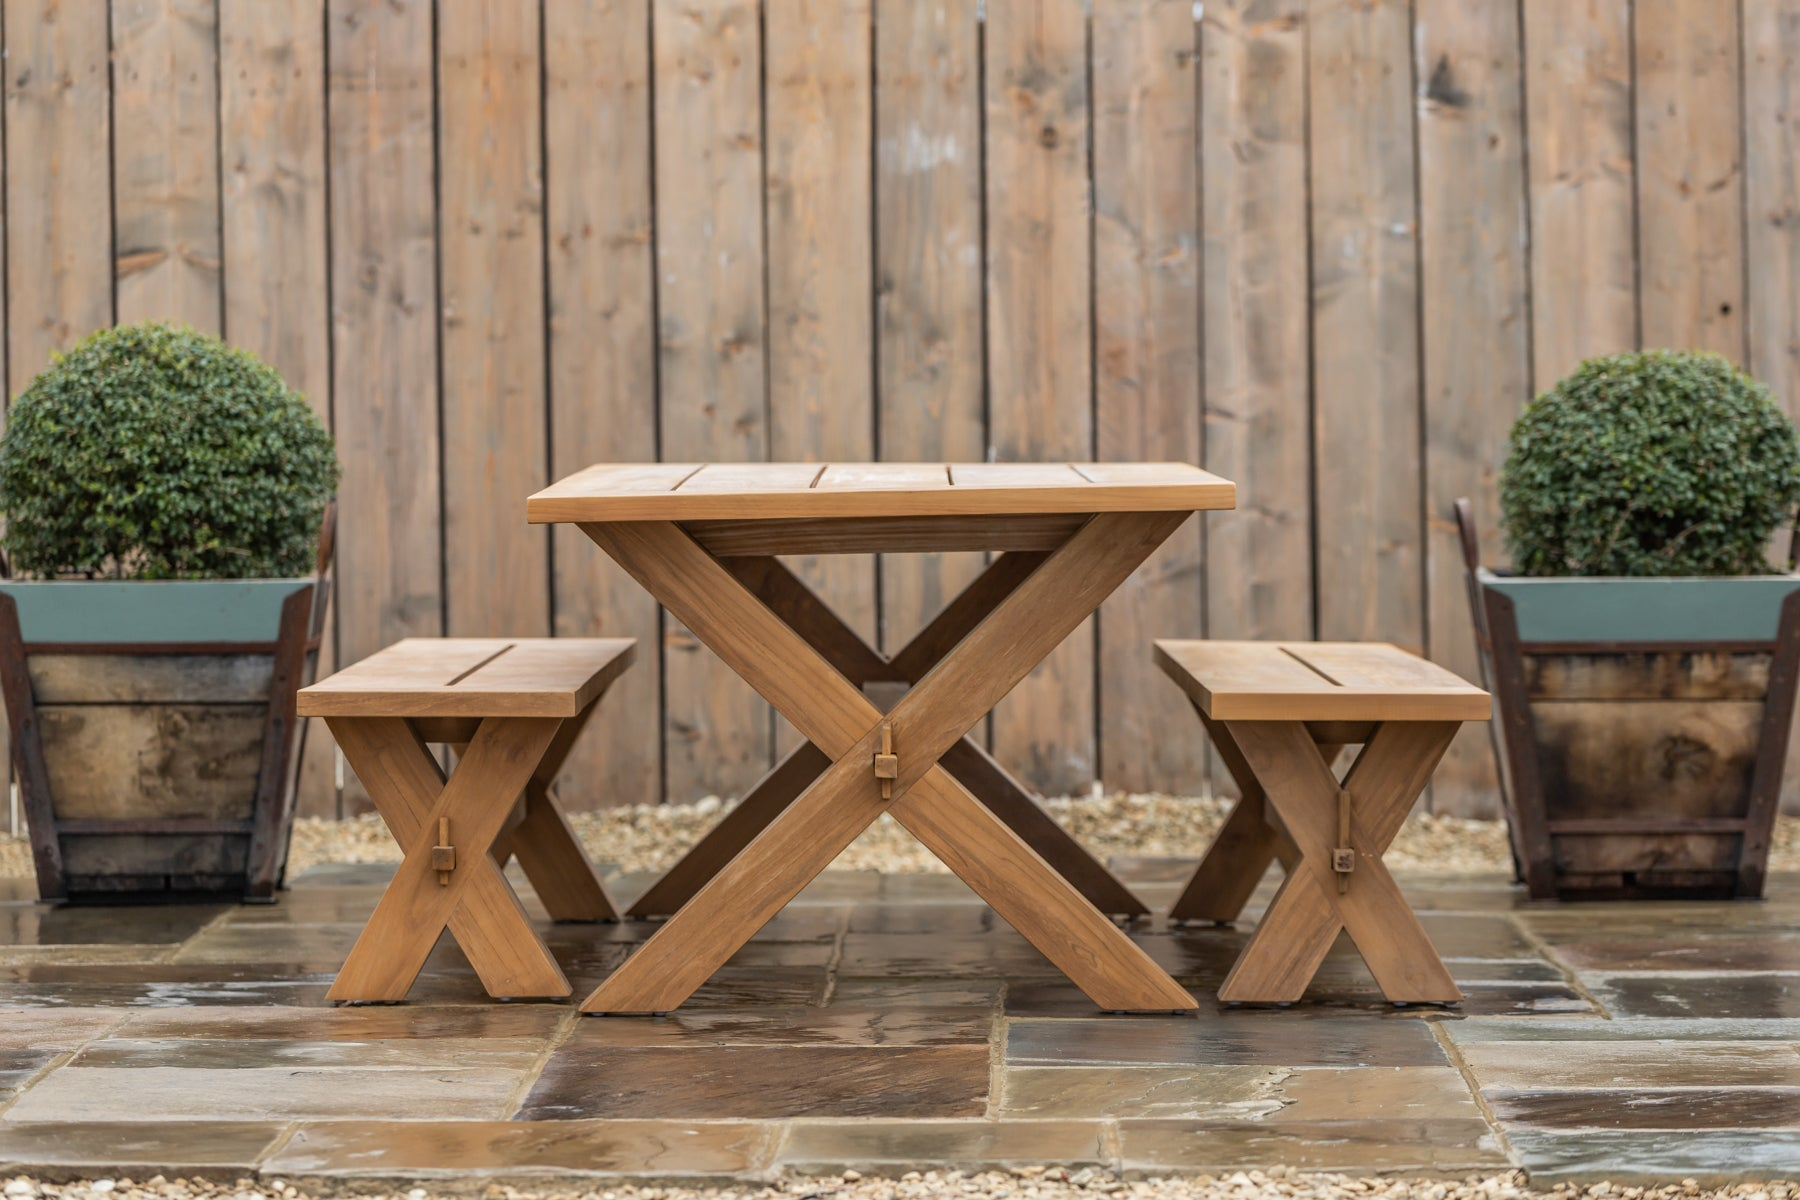 Provence Teak Table with Criss Cross Legs